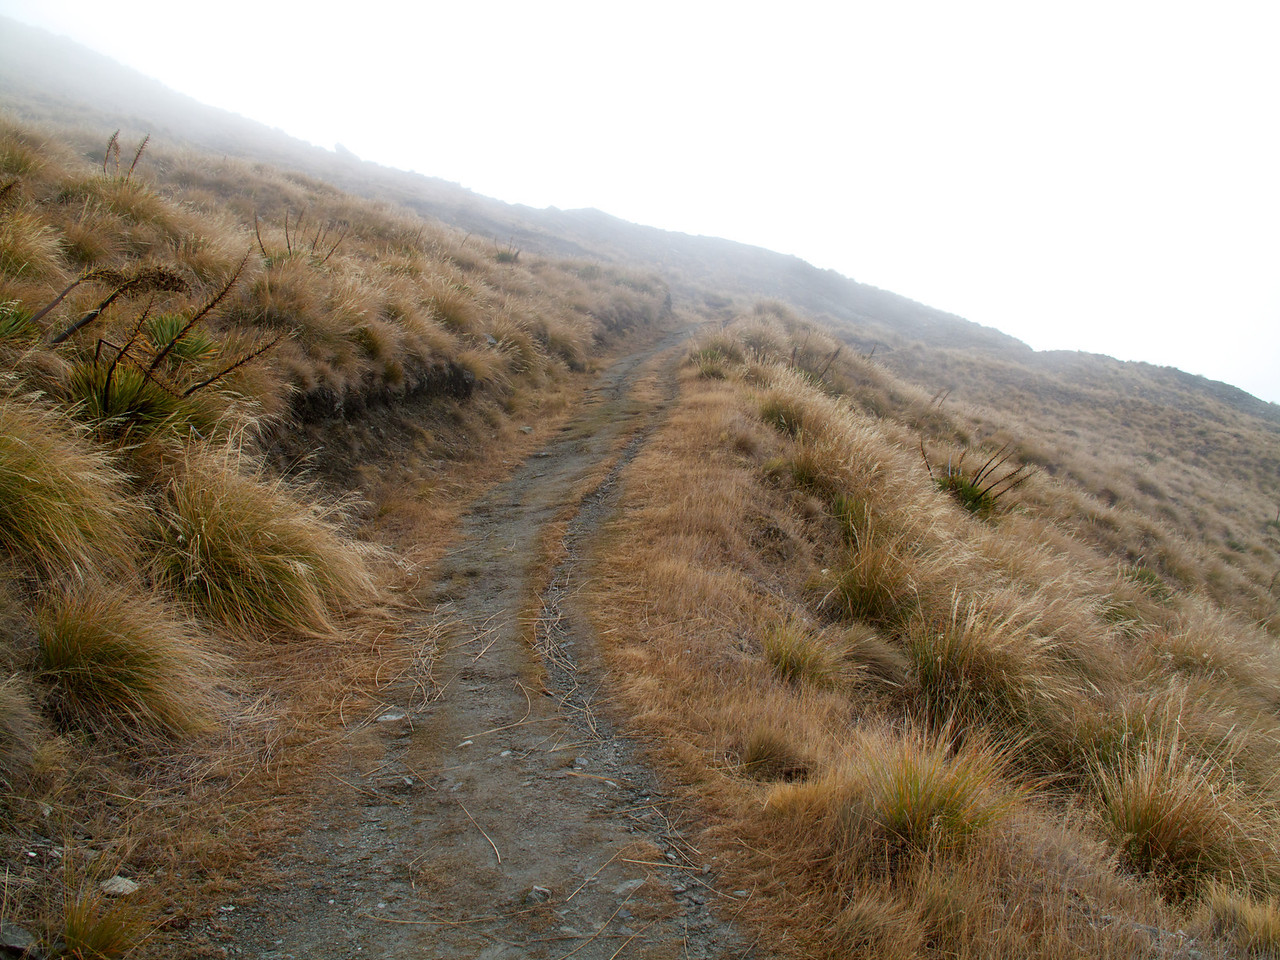 Lots of ZigZags from here to the Summit Roys Peak